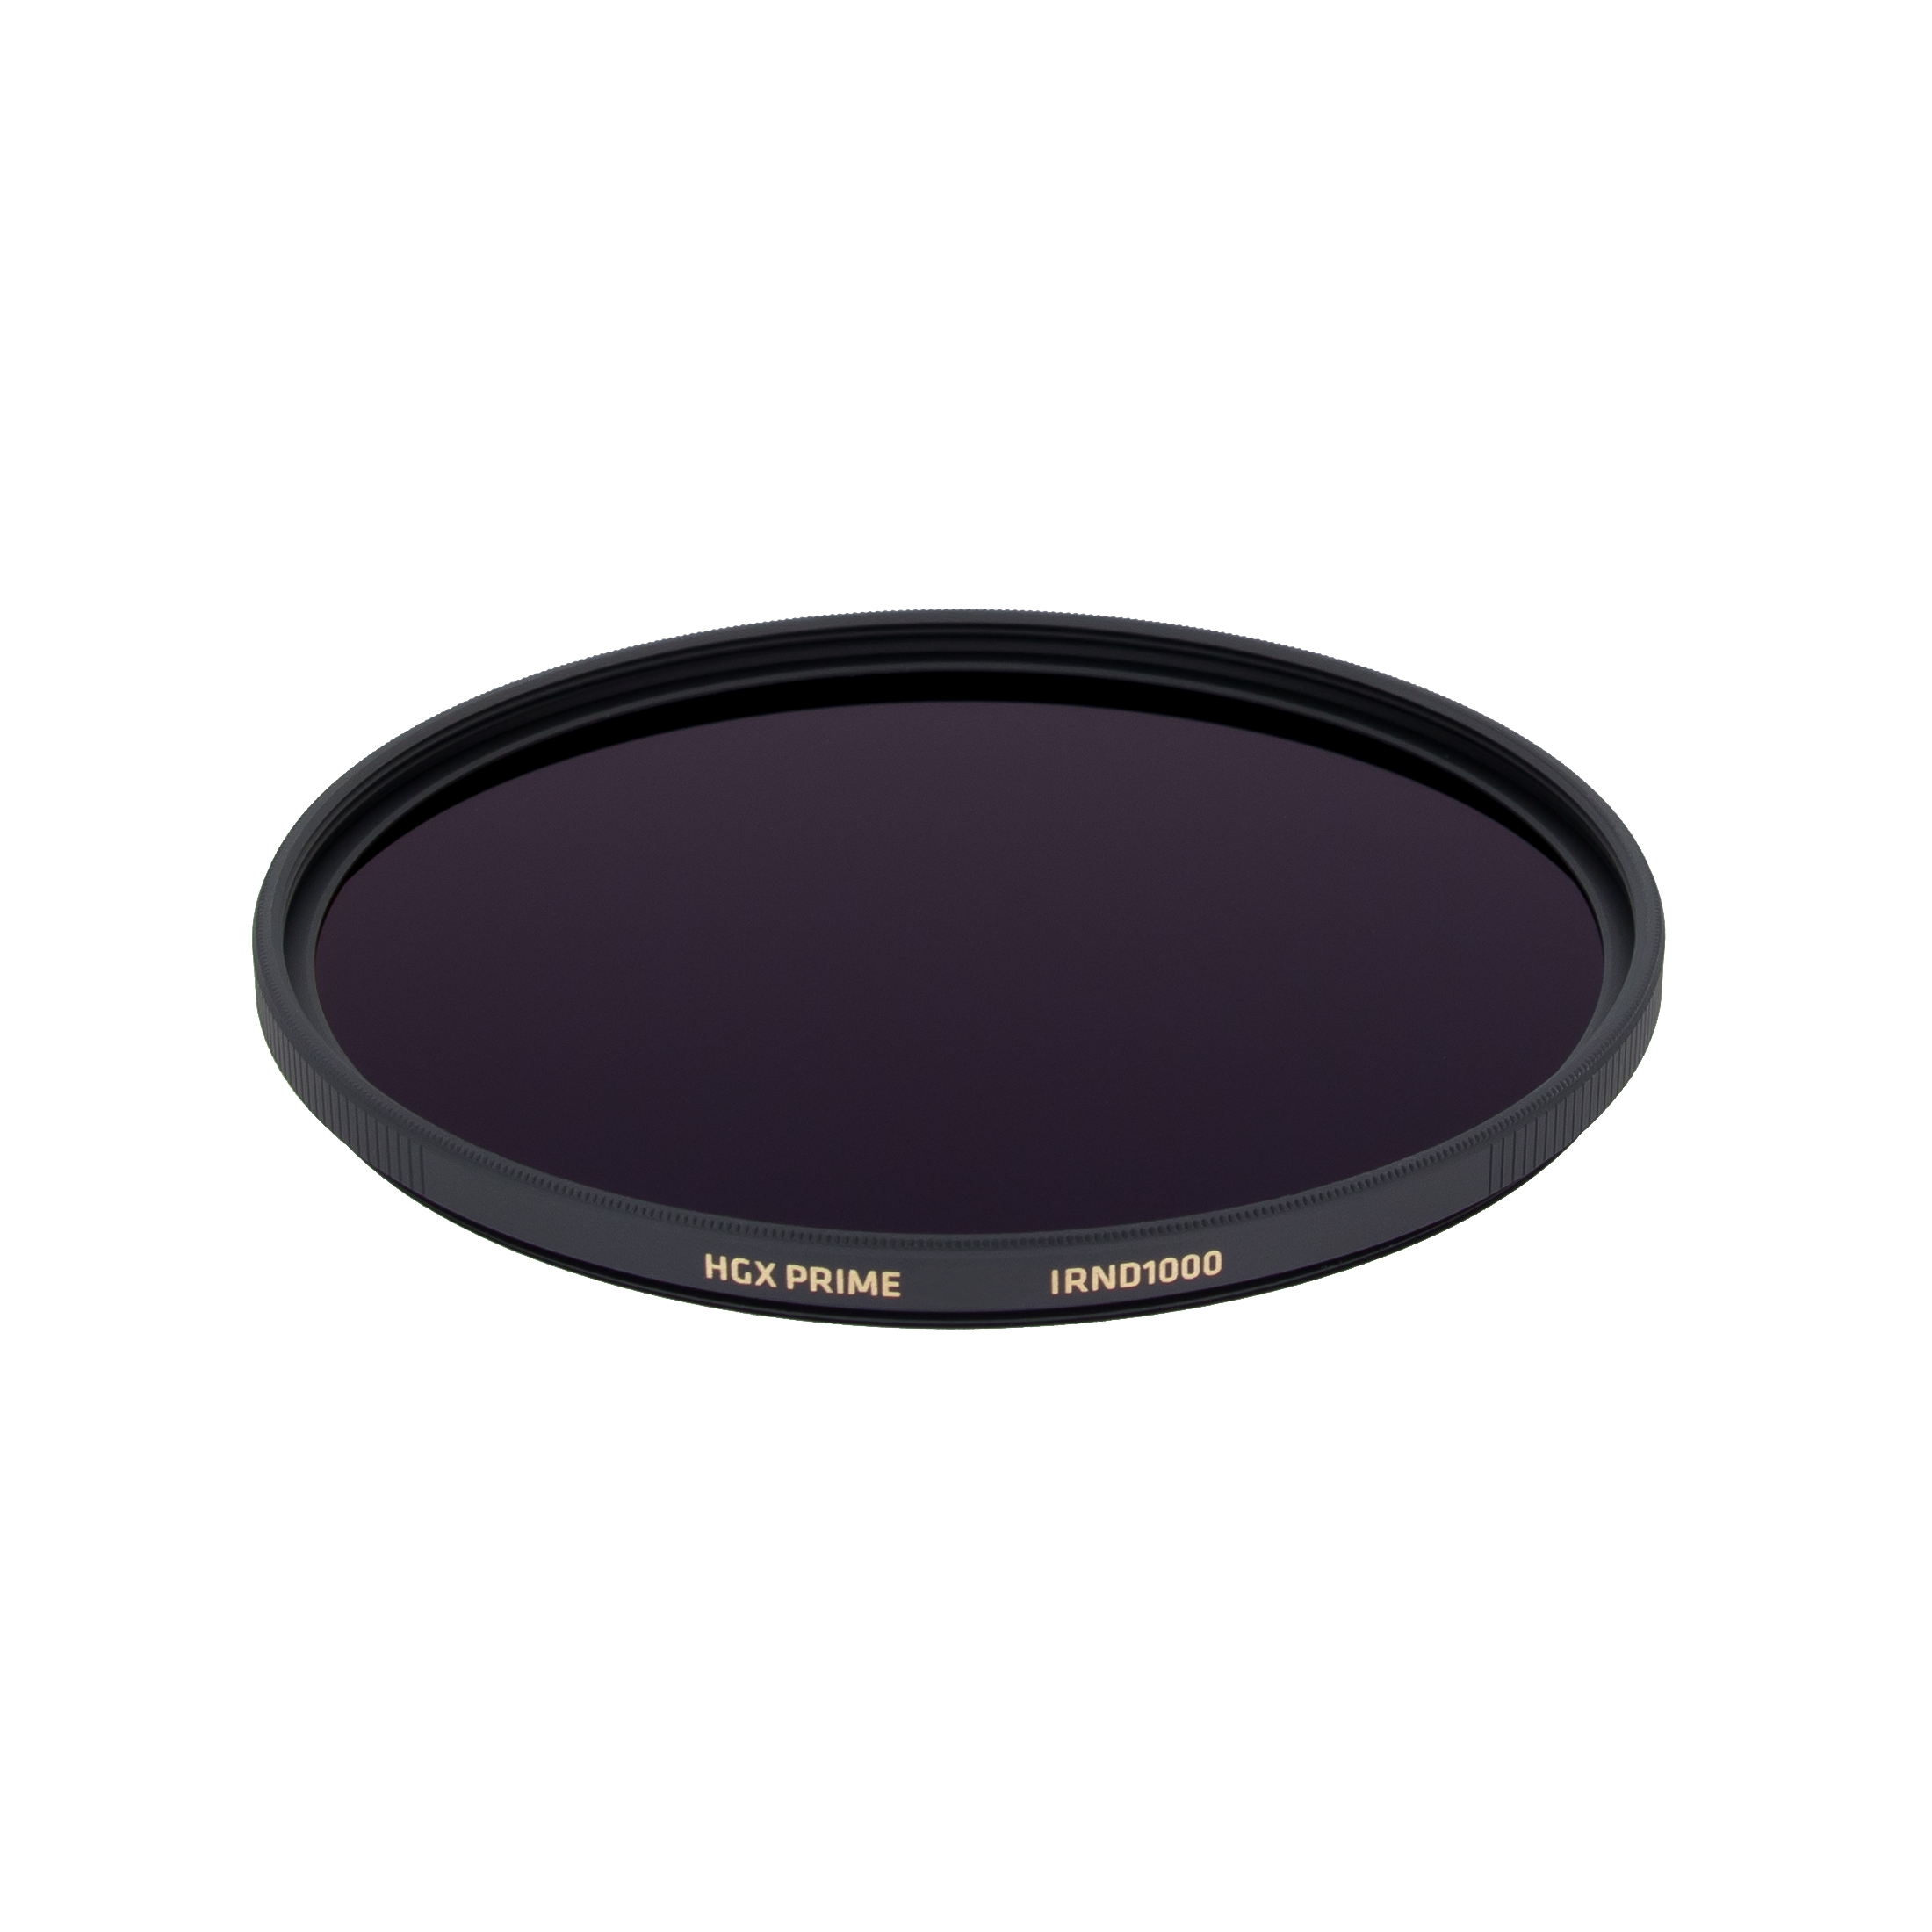 Promaster 6075 72mm IRND1000X HGX Prime Filter